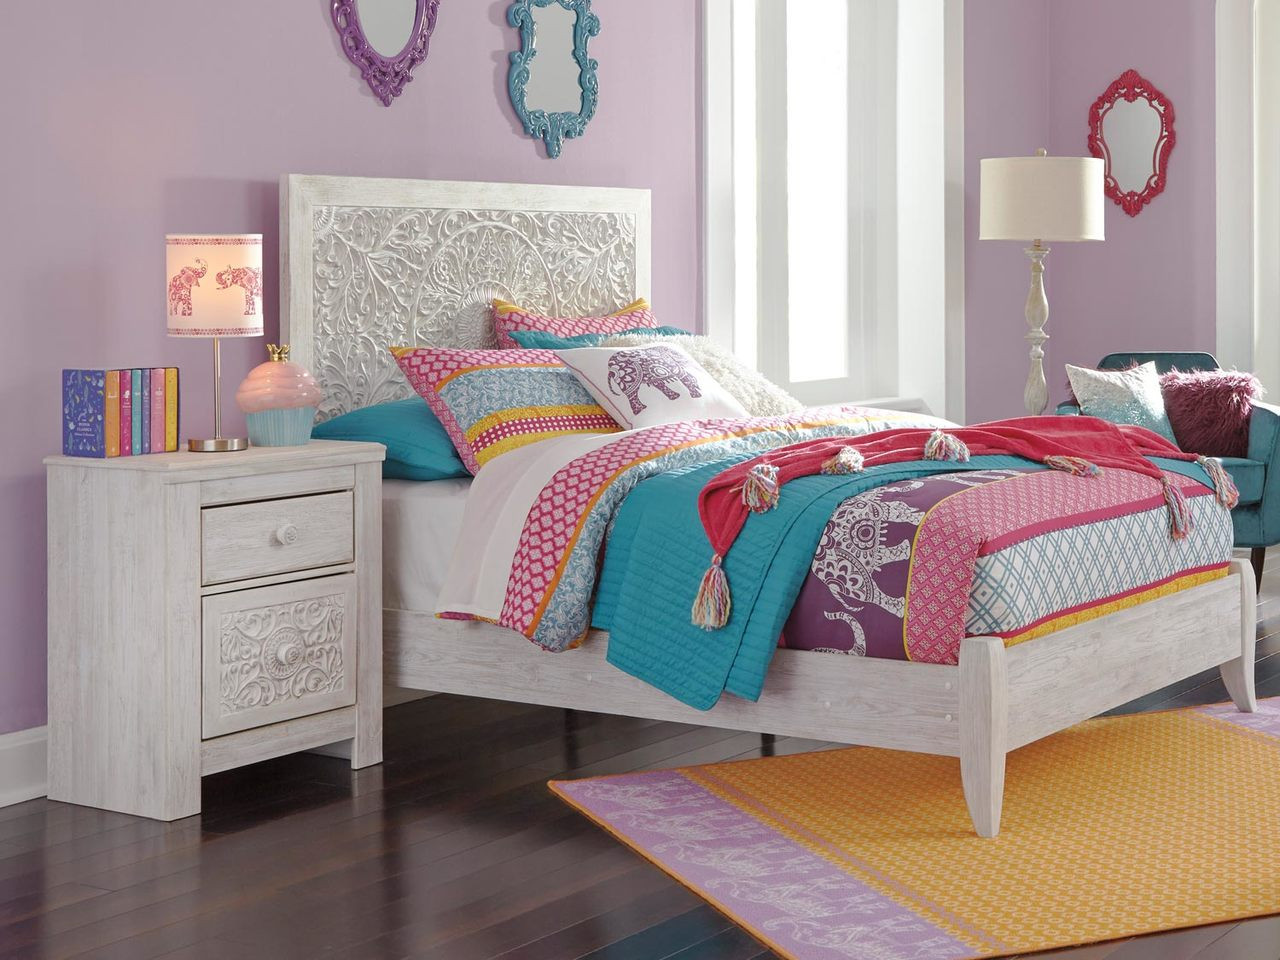 Paxberry Full Size Panel Bed B181 Ashley Kids Furniture Kids Bedroom Furniture